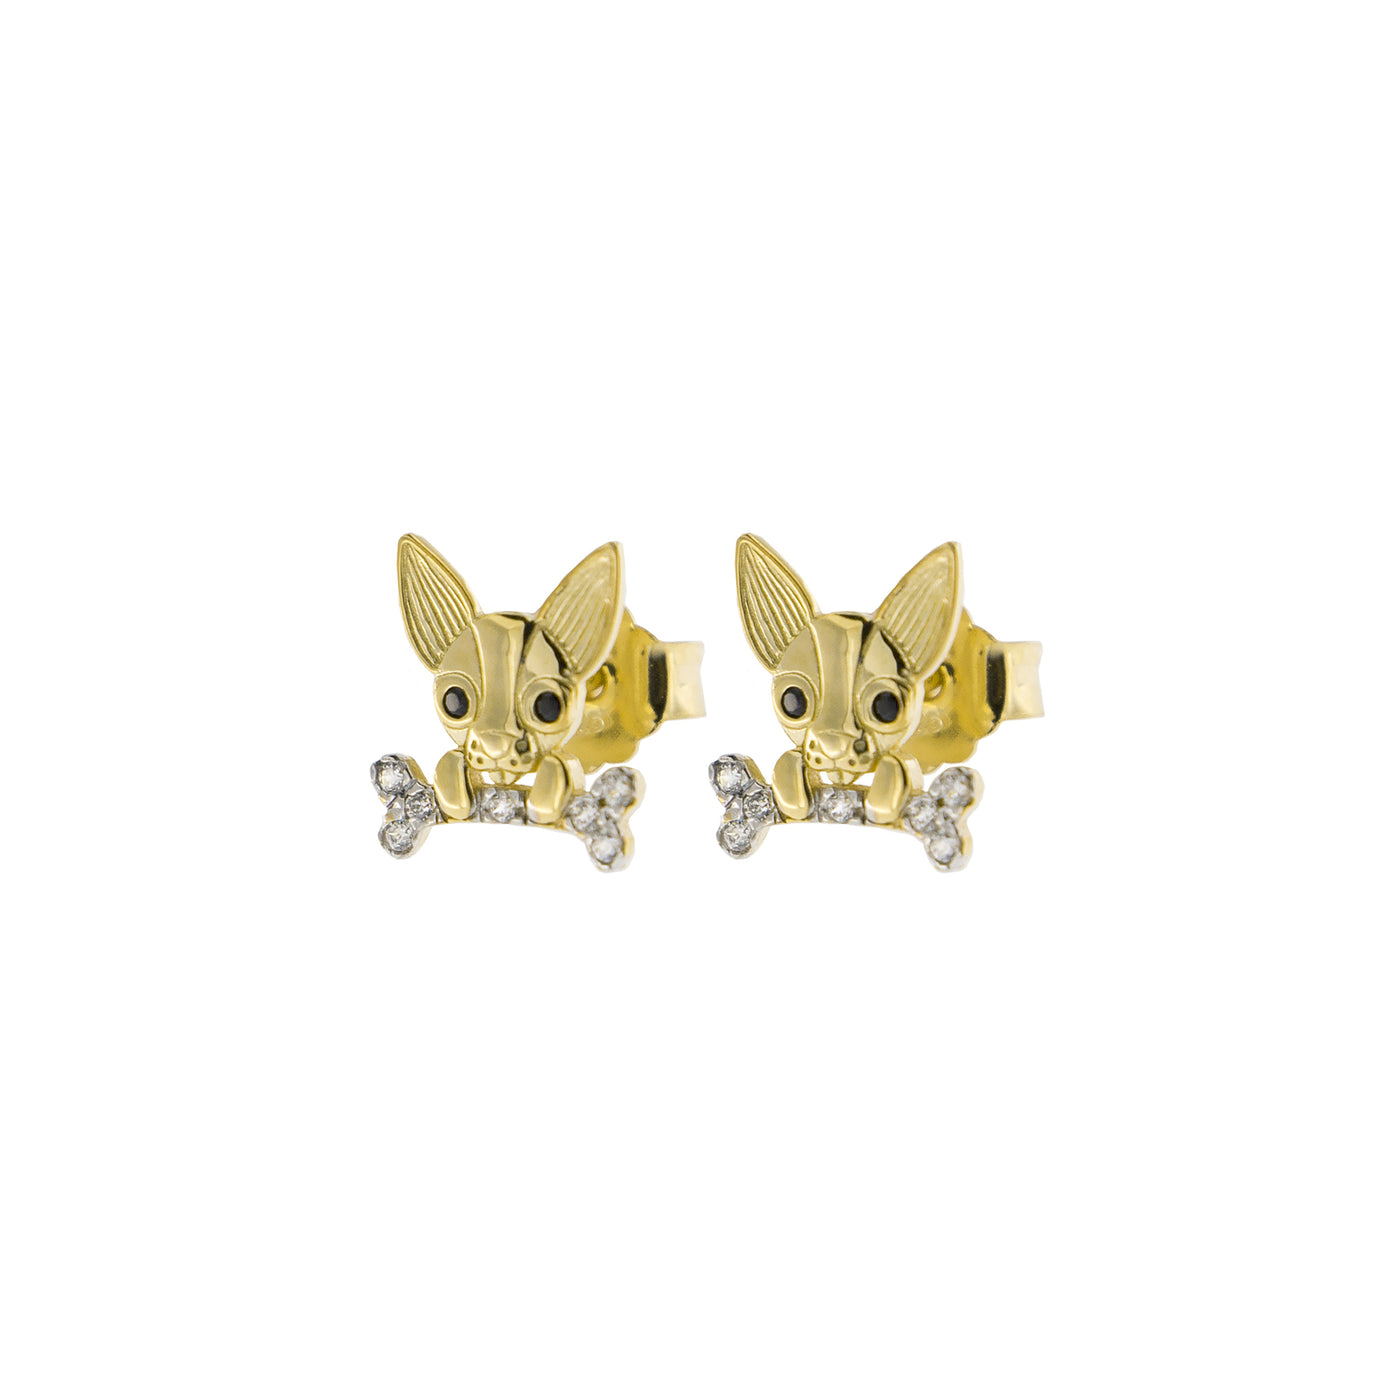 Earrings - Zirconia Earrings With Chihuahua  - 2 | Rue des Mille